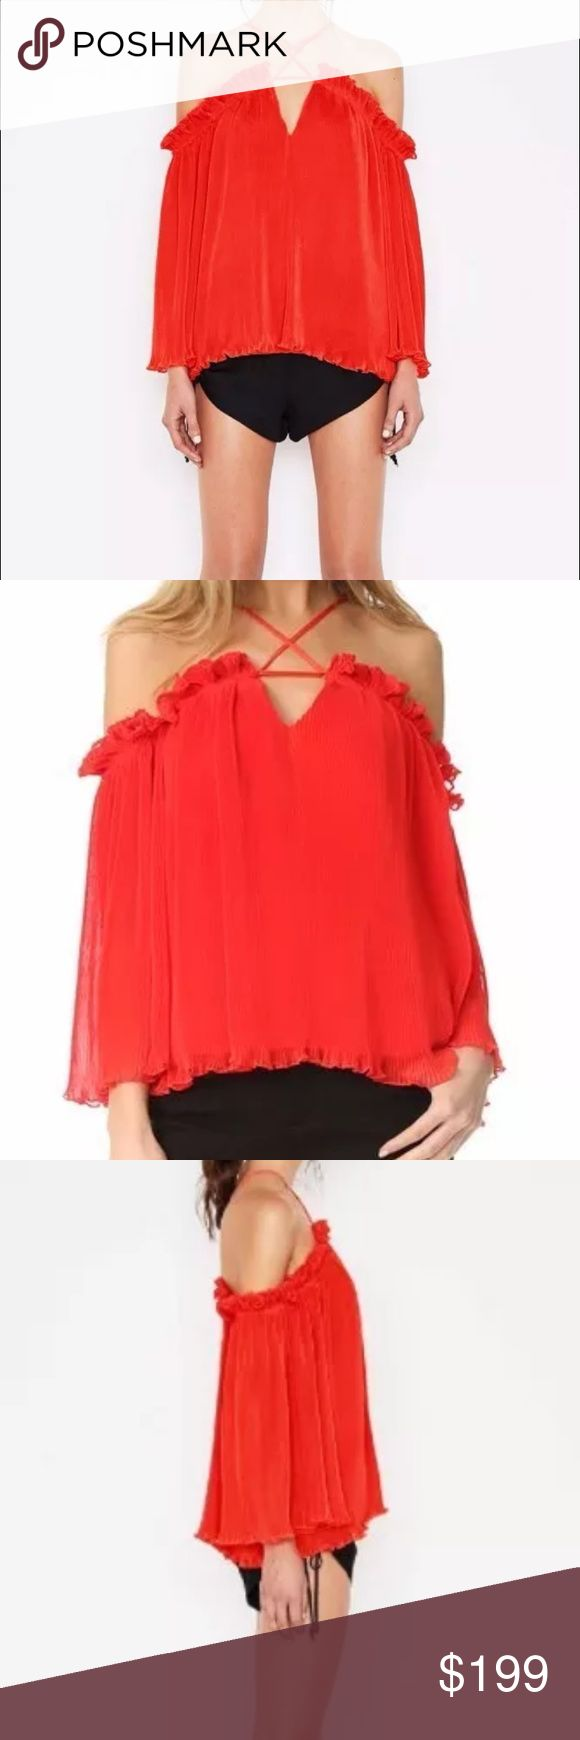 Alice McCall What Do You Mean Top- Red- NWT- 2 US Brand New with Tags- $240 Retail - SOLD OUT                              Size 2 US / 6 AUS Crisp micro-pleats create rich texture and movement through this breezy Alice McCall blouse. Slim, adjustable shoulder straps suspend the off-shoulder silhouette. Draped sleeves. Button back closure. Lined. - Off the shoulder style - Flared sleeves - Adjustable straps Fabric: Chiffon. Shell: 100% polyester. Lining: 97% polyester/3% elastane. Alice…